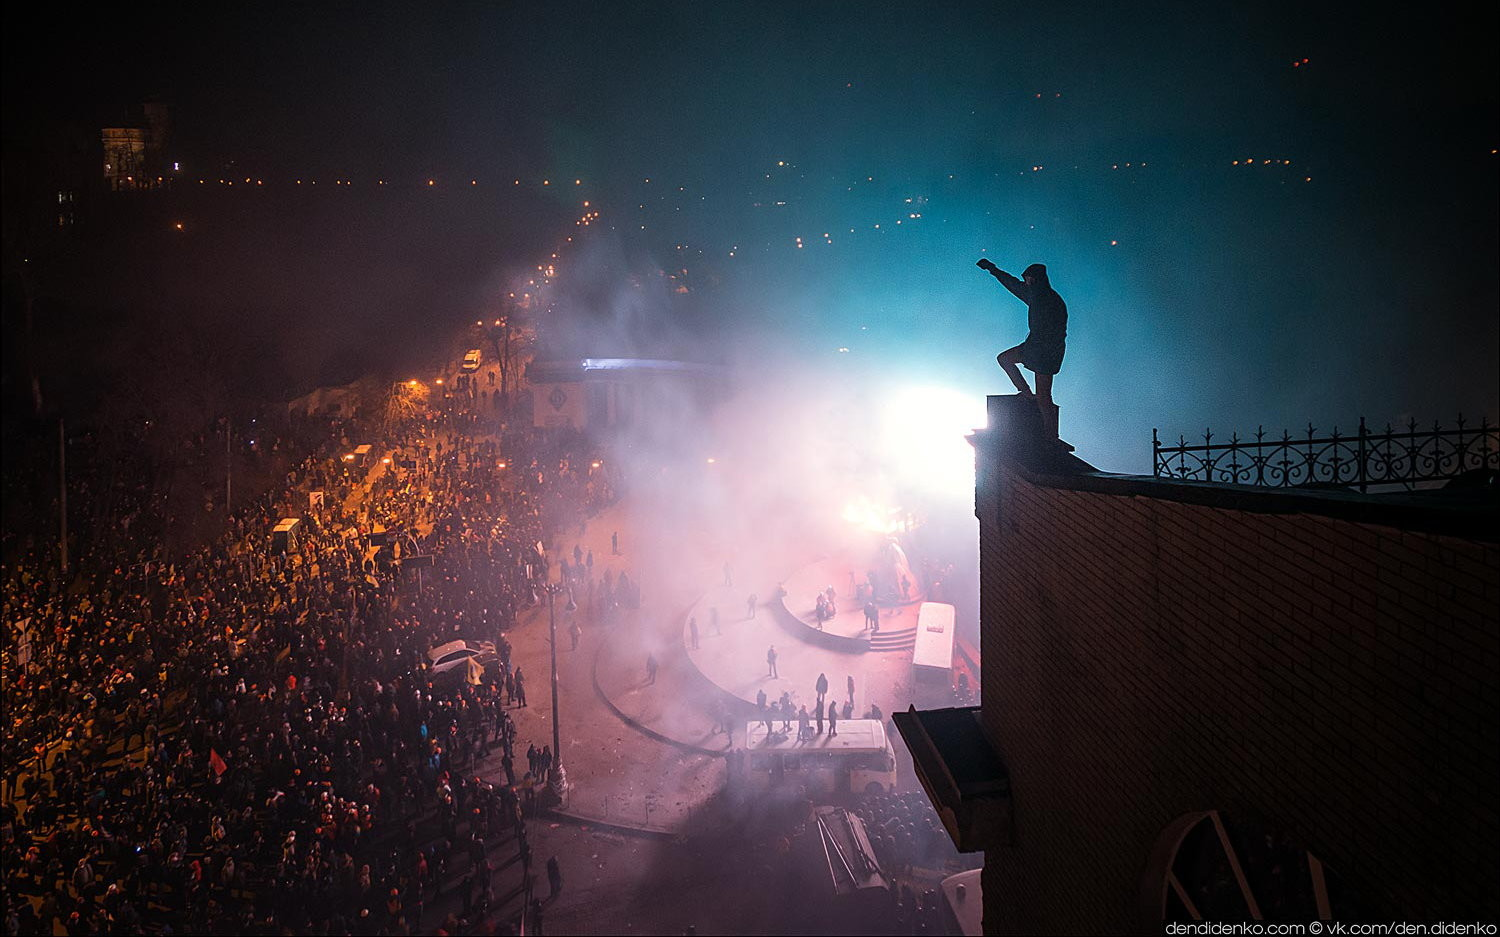 45 Remarkable Photos of Civil Unrest In Ukraine #Euromaidan